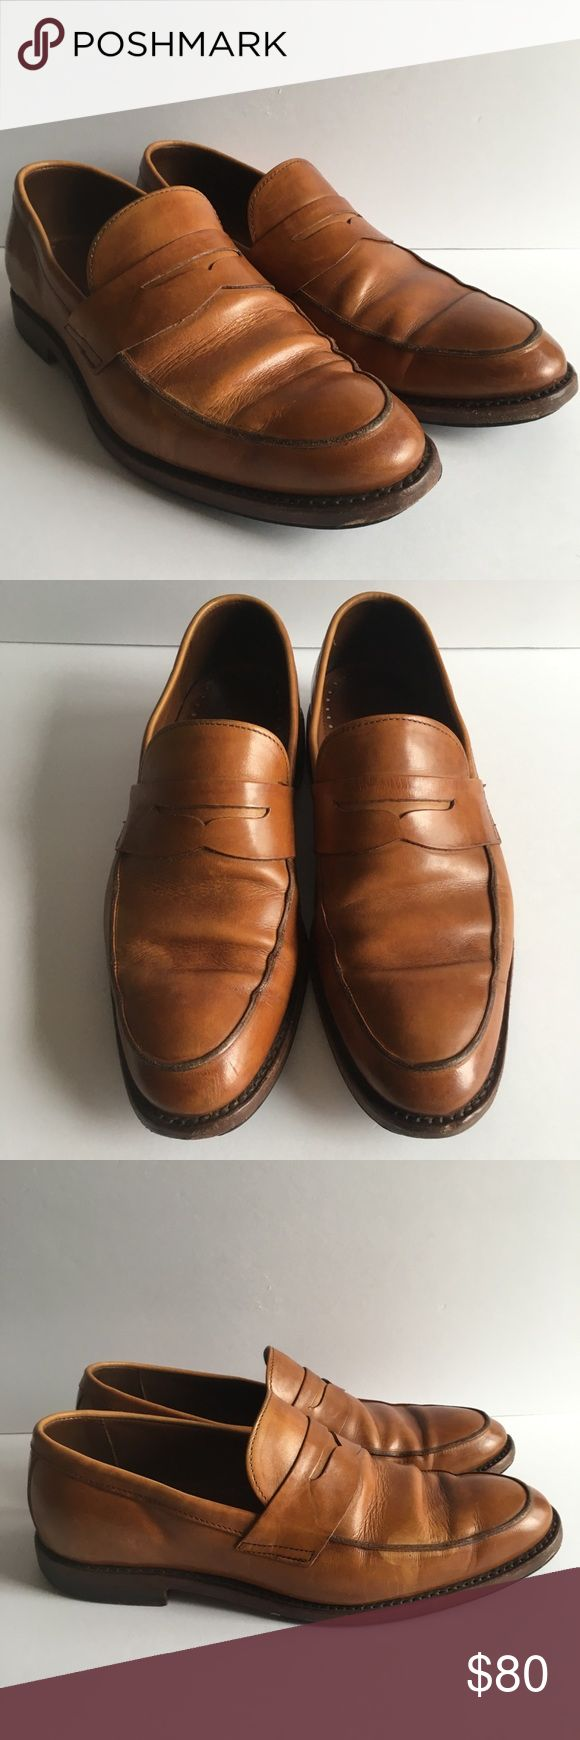 """Brooks Brothers Loafer Slips On Mens Shoes Size 10 This listing is for a pair of men's Brooks Brothers light brown/tan loafer slip on shoes. They are not marked with a size, however they are consistent with a men's size 10. They measure 10.75 inches from toe to heel on the interior of the shoe and the exterior sole measures 11.75"""" Brooks Brothers Shoes Loafers & Slip-Ons"""